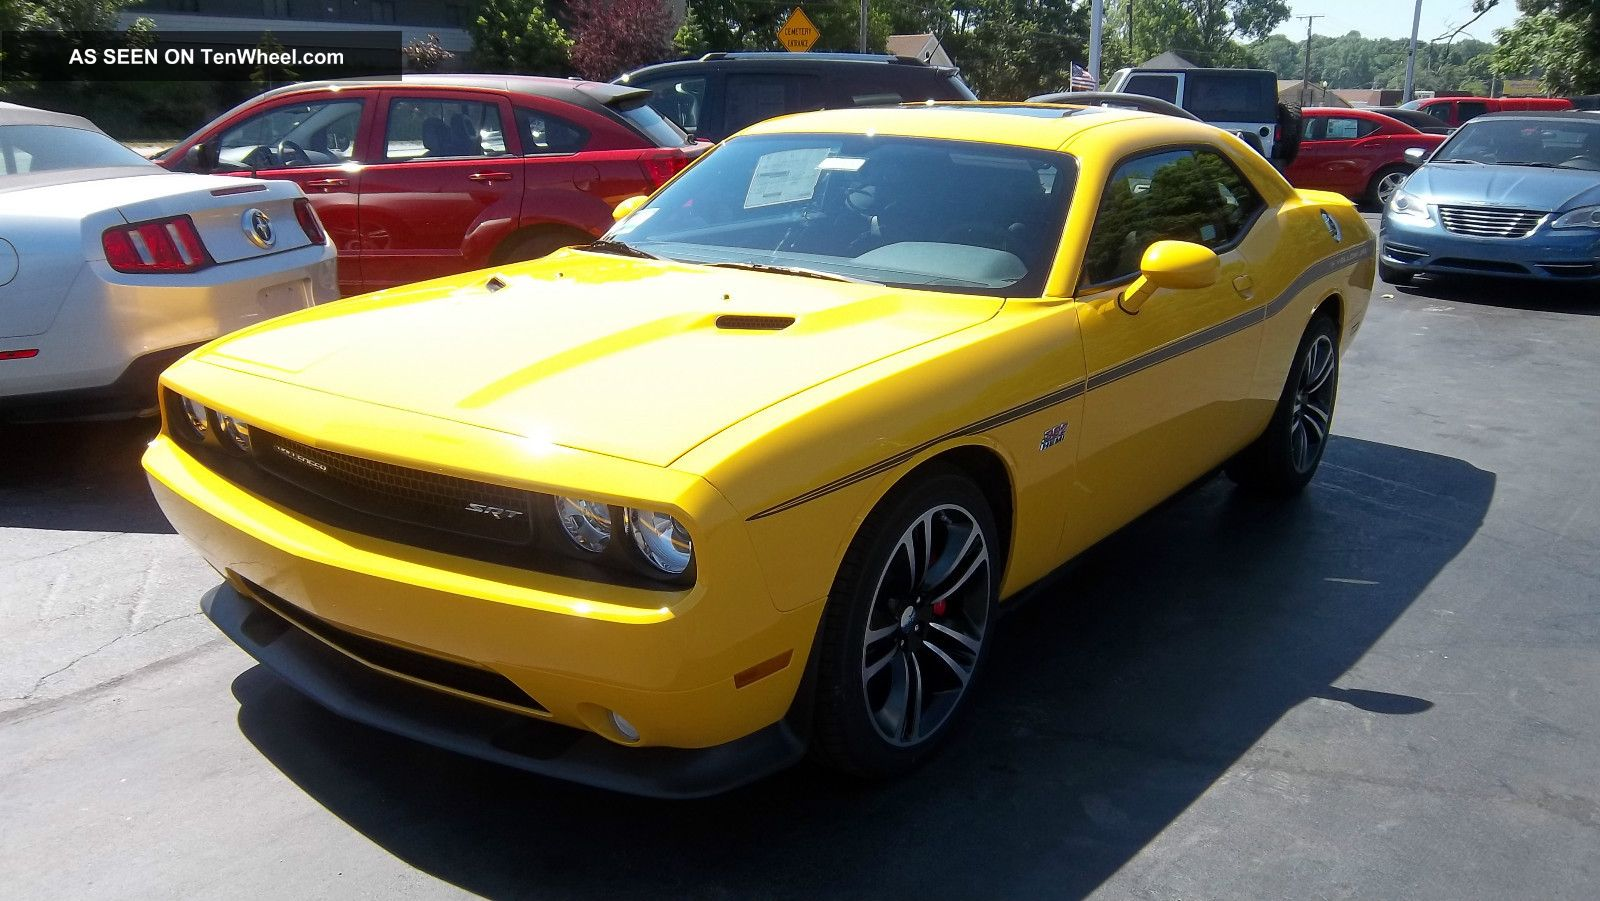 2012 Dodge Challenger Srt8 Yellow Jacket Stinger Yellow Challenger photo